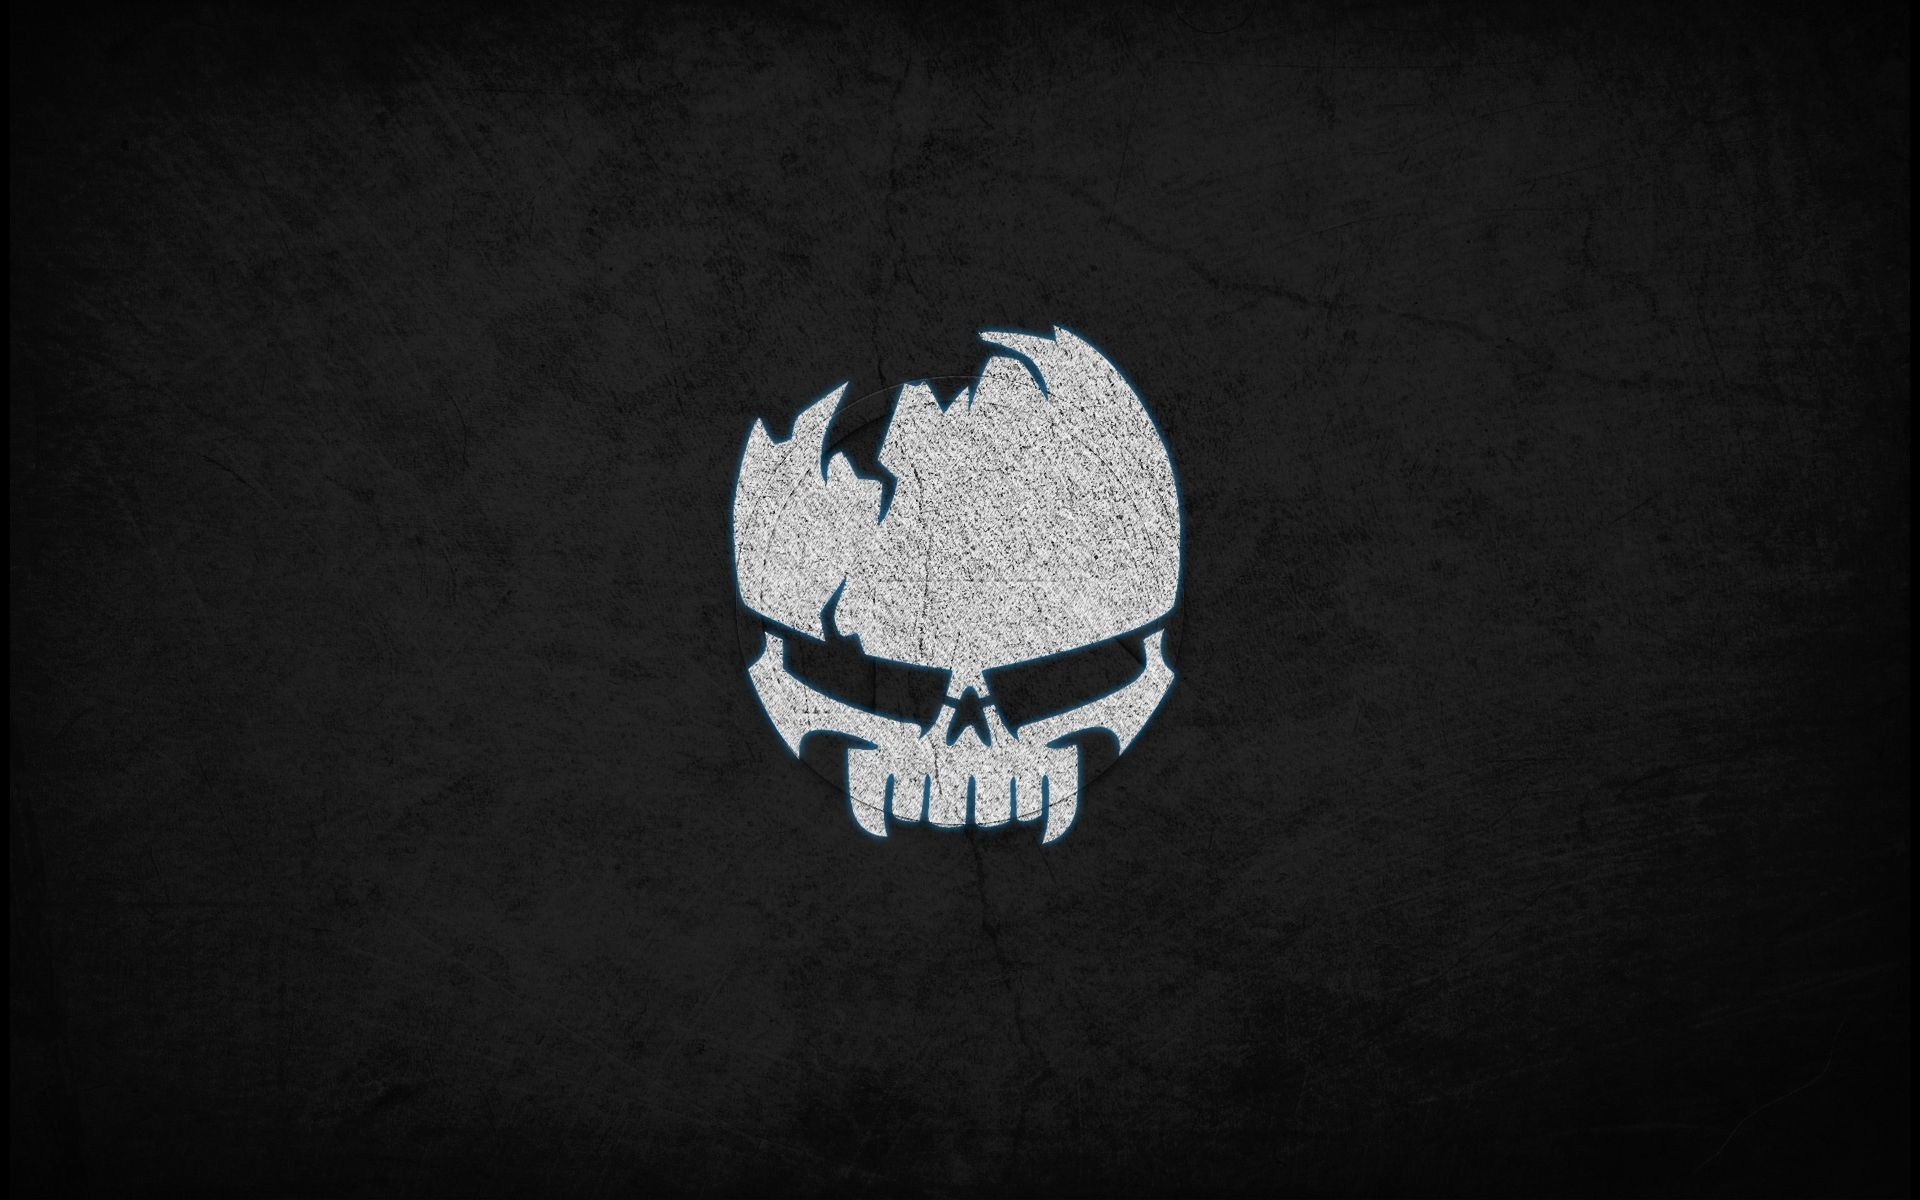 1920x1200 Cool Skull Wallpaper HD 1920×1200 Cool HD Skull Wallpapers (47 Wallpapers)